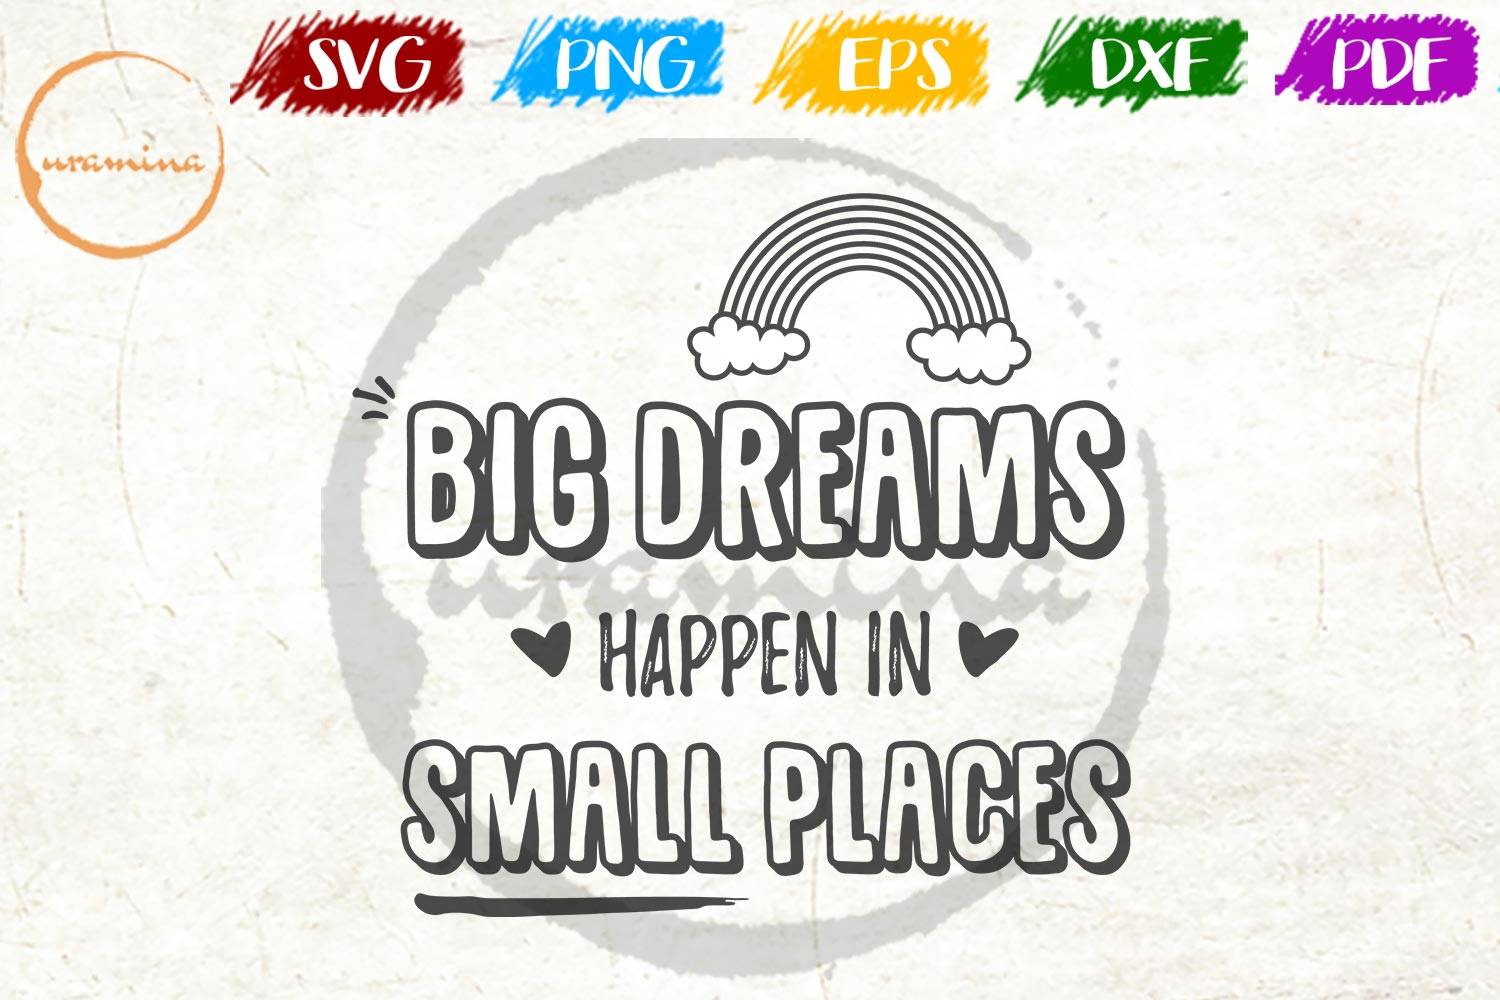 Download Free Big Dream Happen In Small Places Graphic By Uramina Creative for Cricut Explore, Silhouette and other cutting machines.